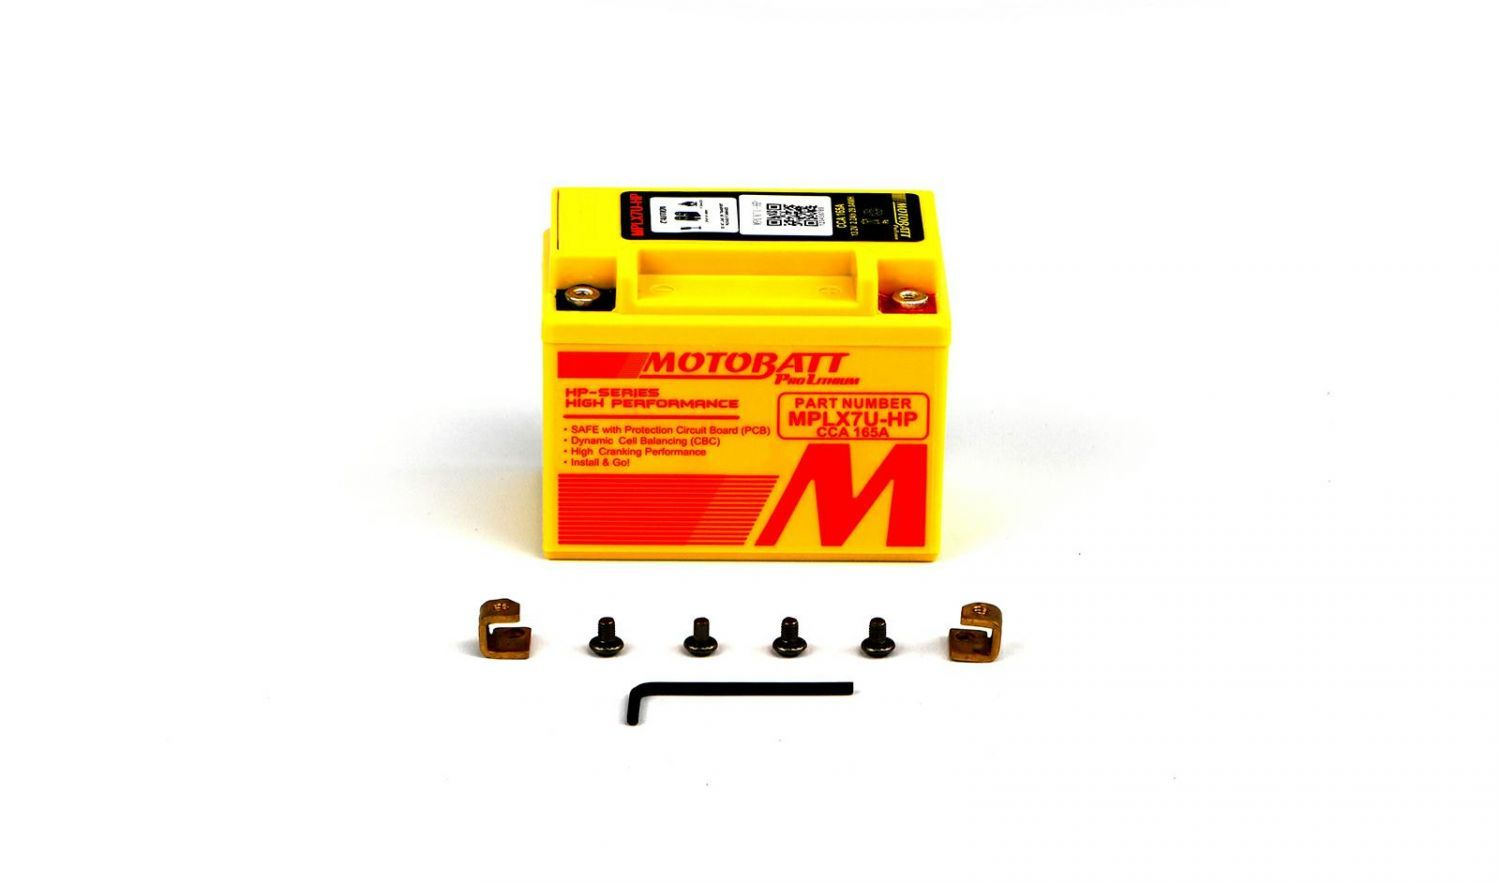 Motobatt Lithium Batteries - 501075MR image